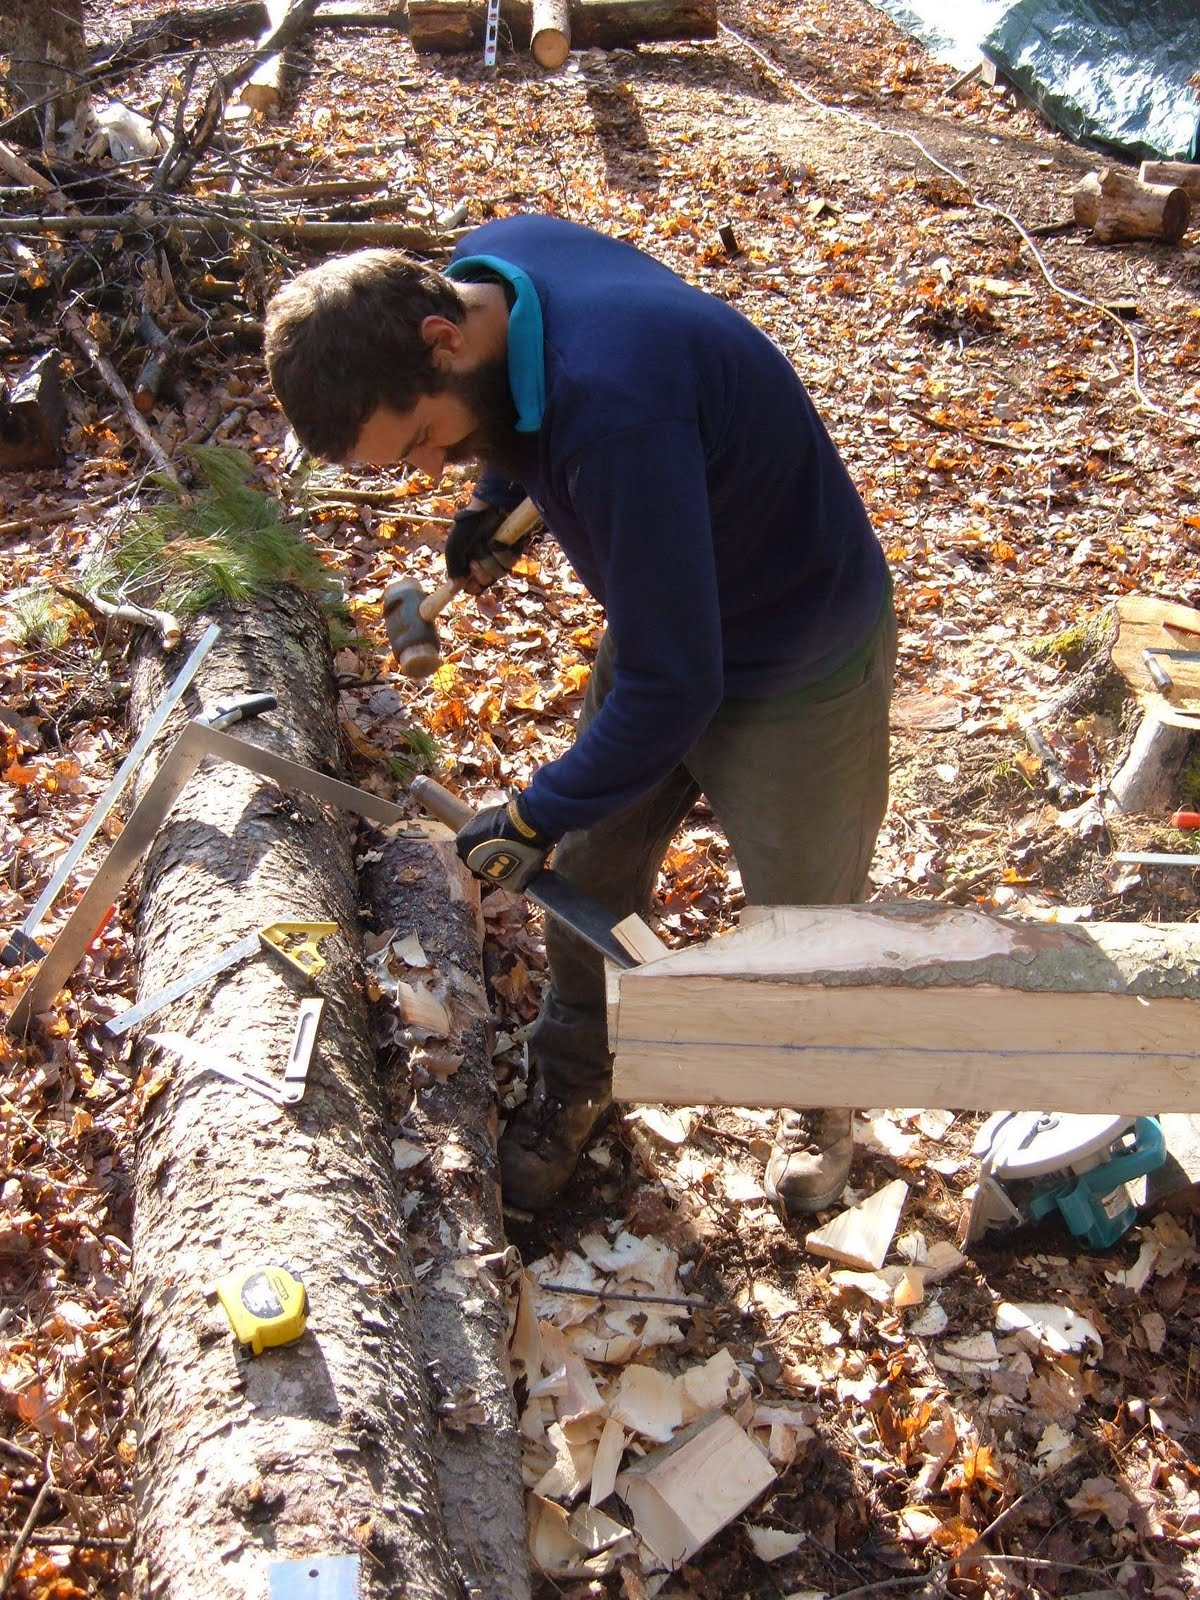 Michael cuts the joinery on the foot of a new rafter.